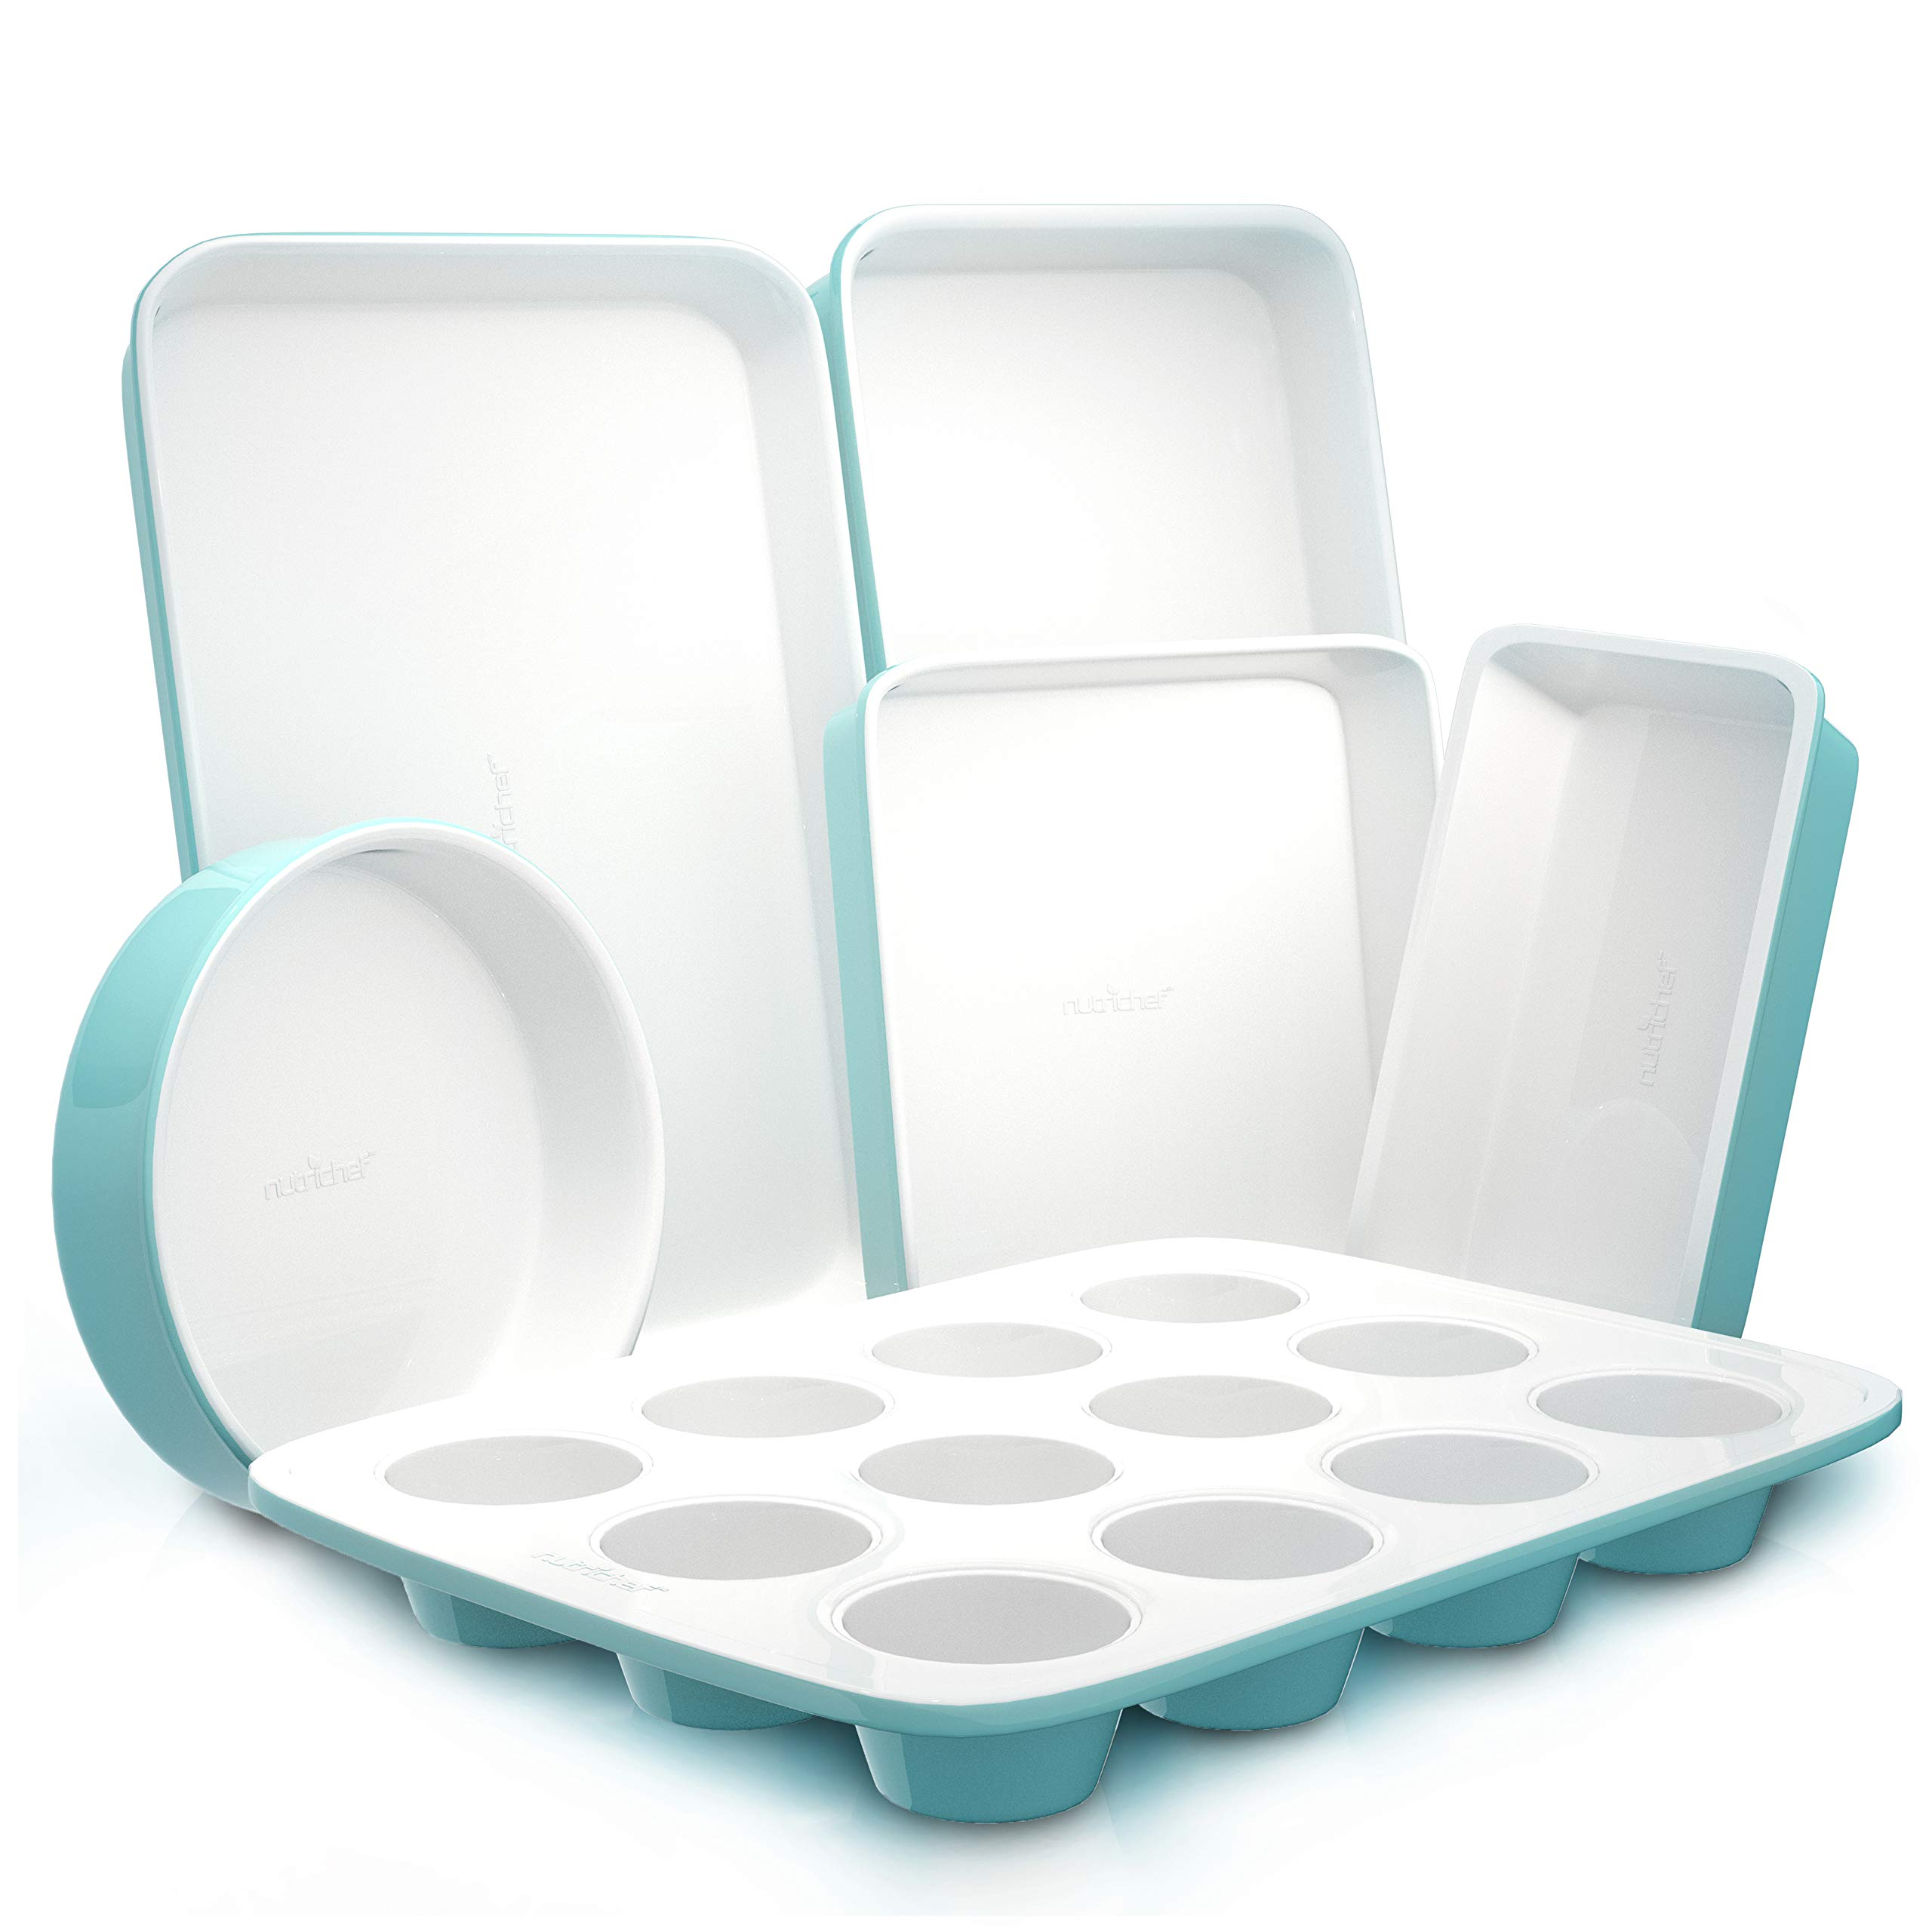 6-Pcs Kitchen Oven Baking Pans - Non-Stick Baking Sheets Set, Attractive Green pans  & White Inside Pan, Quality Kitchenware For Cooking & Baking Cake Loaf, Muffins & More - NutriChef NCBK6CT5 by Nutrichef